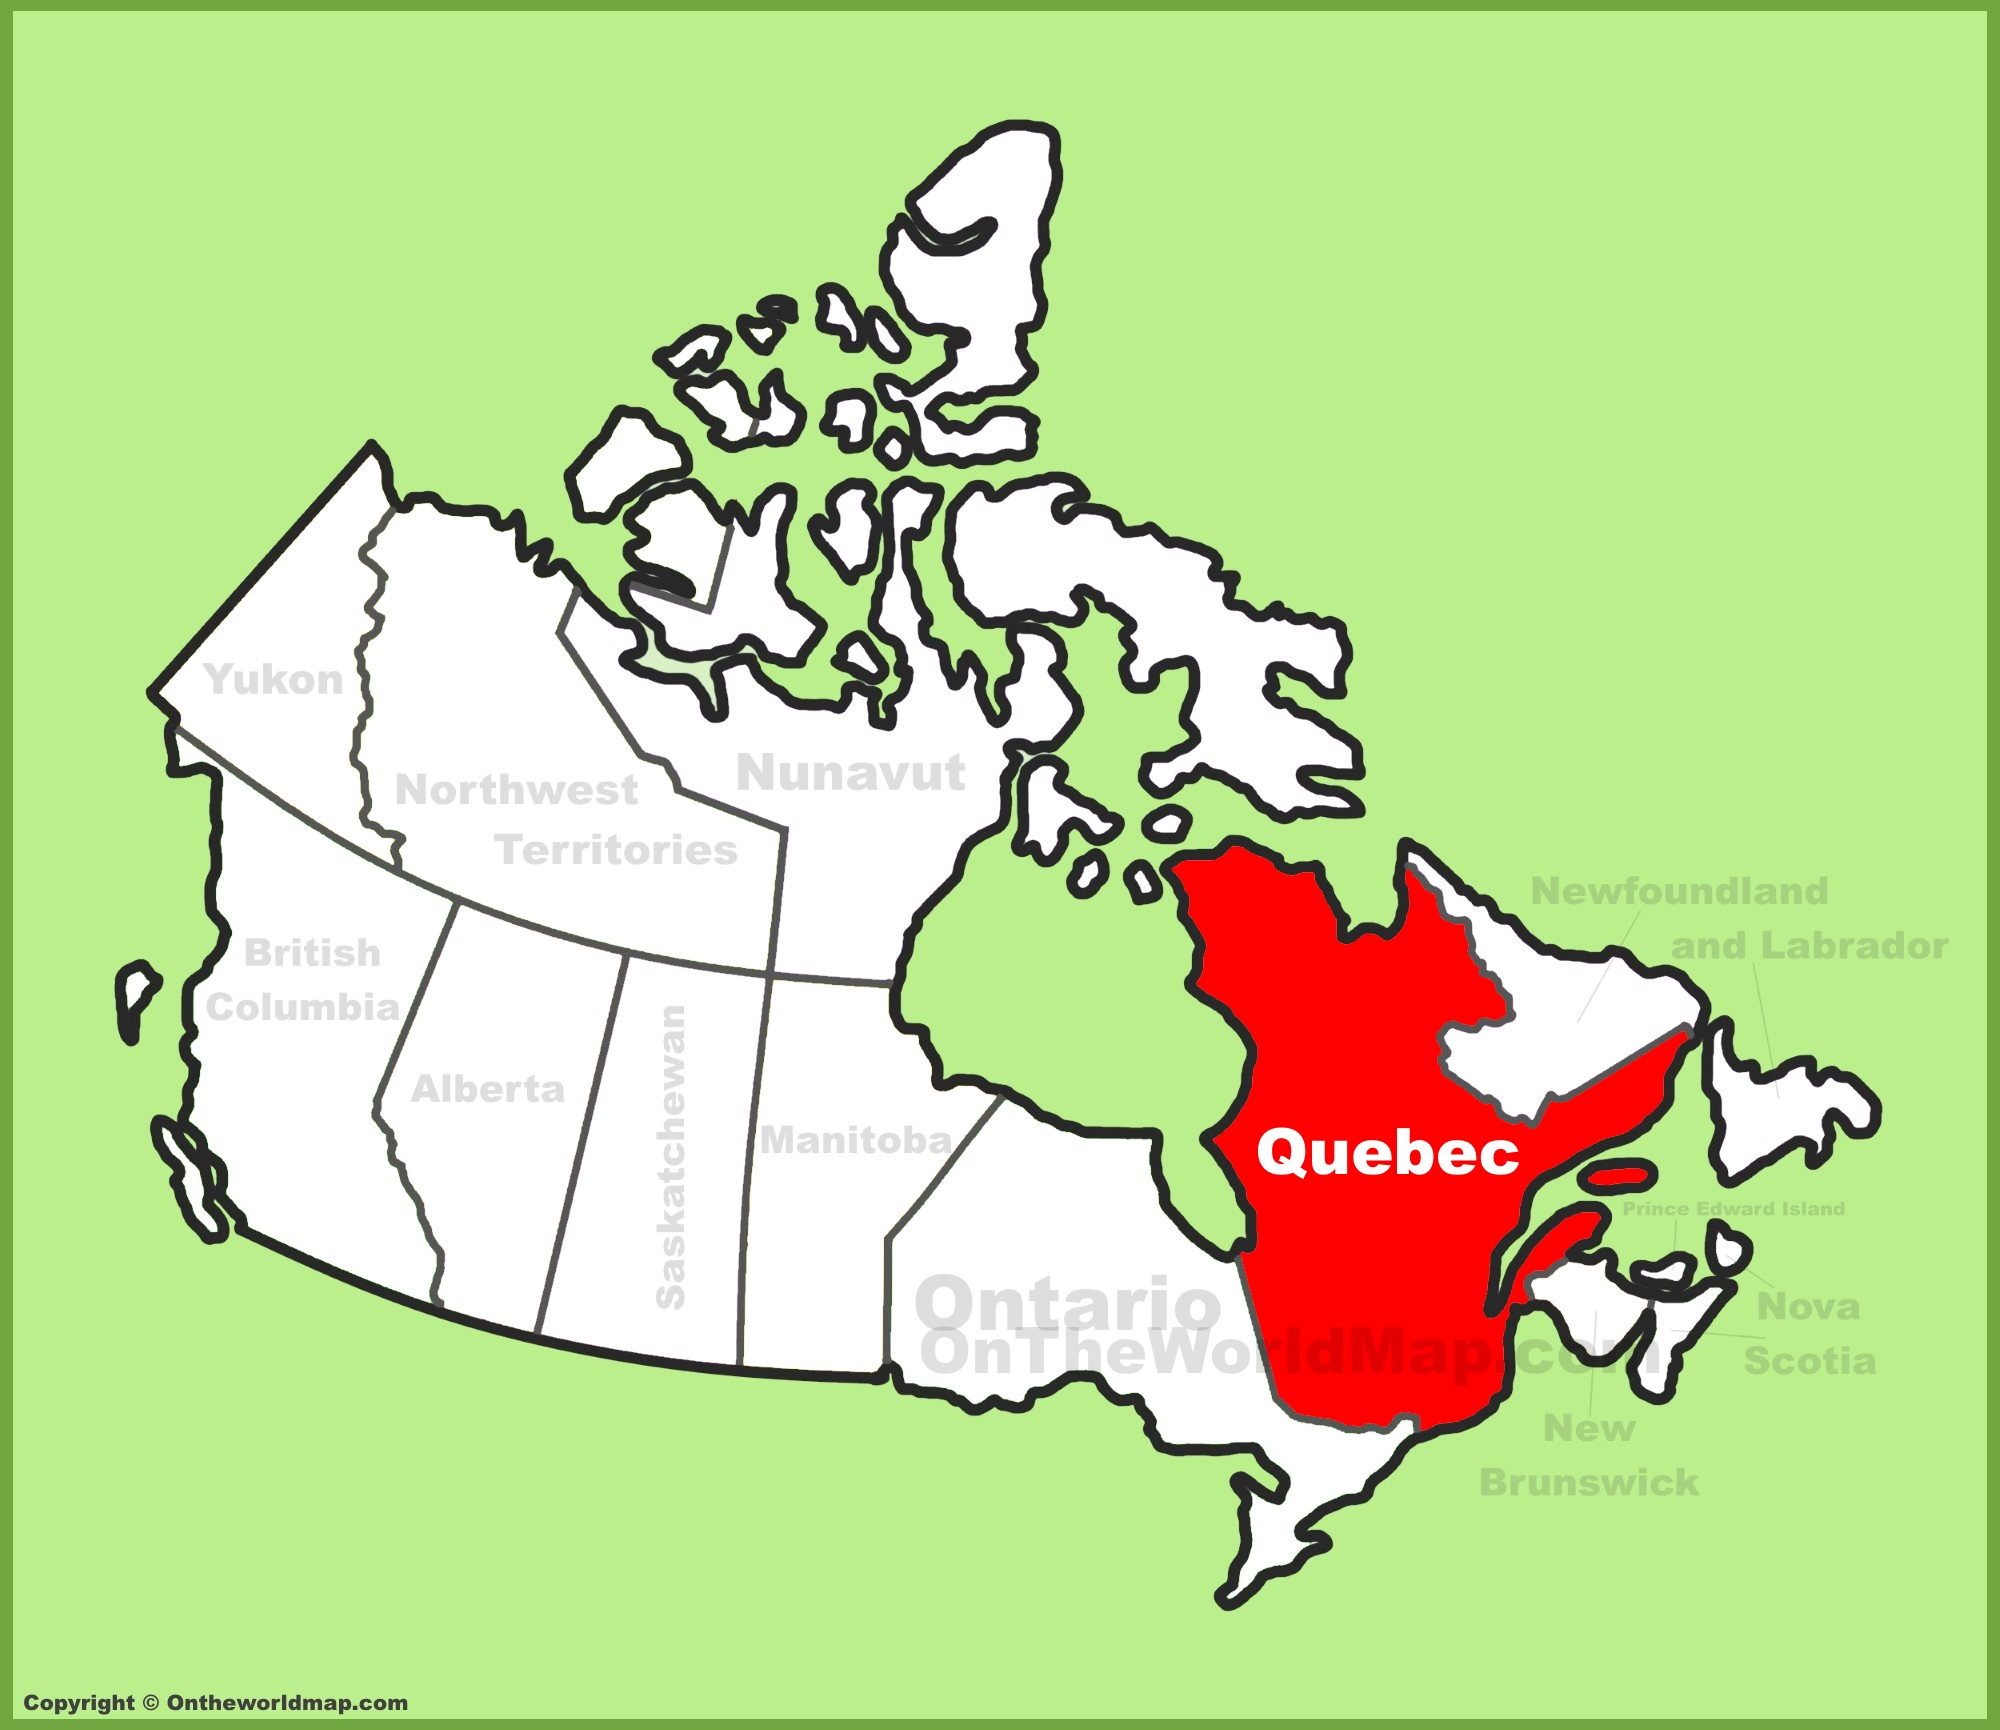 Quebec province maps canada maps of quebec qc full size quebec location map gumiabroncs Images